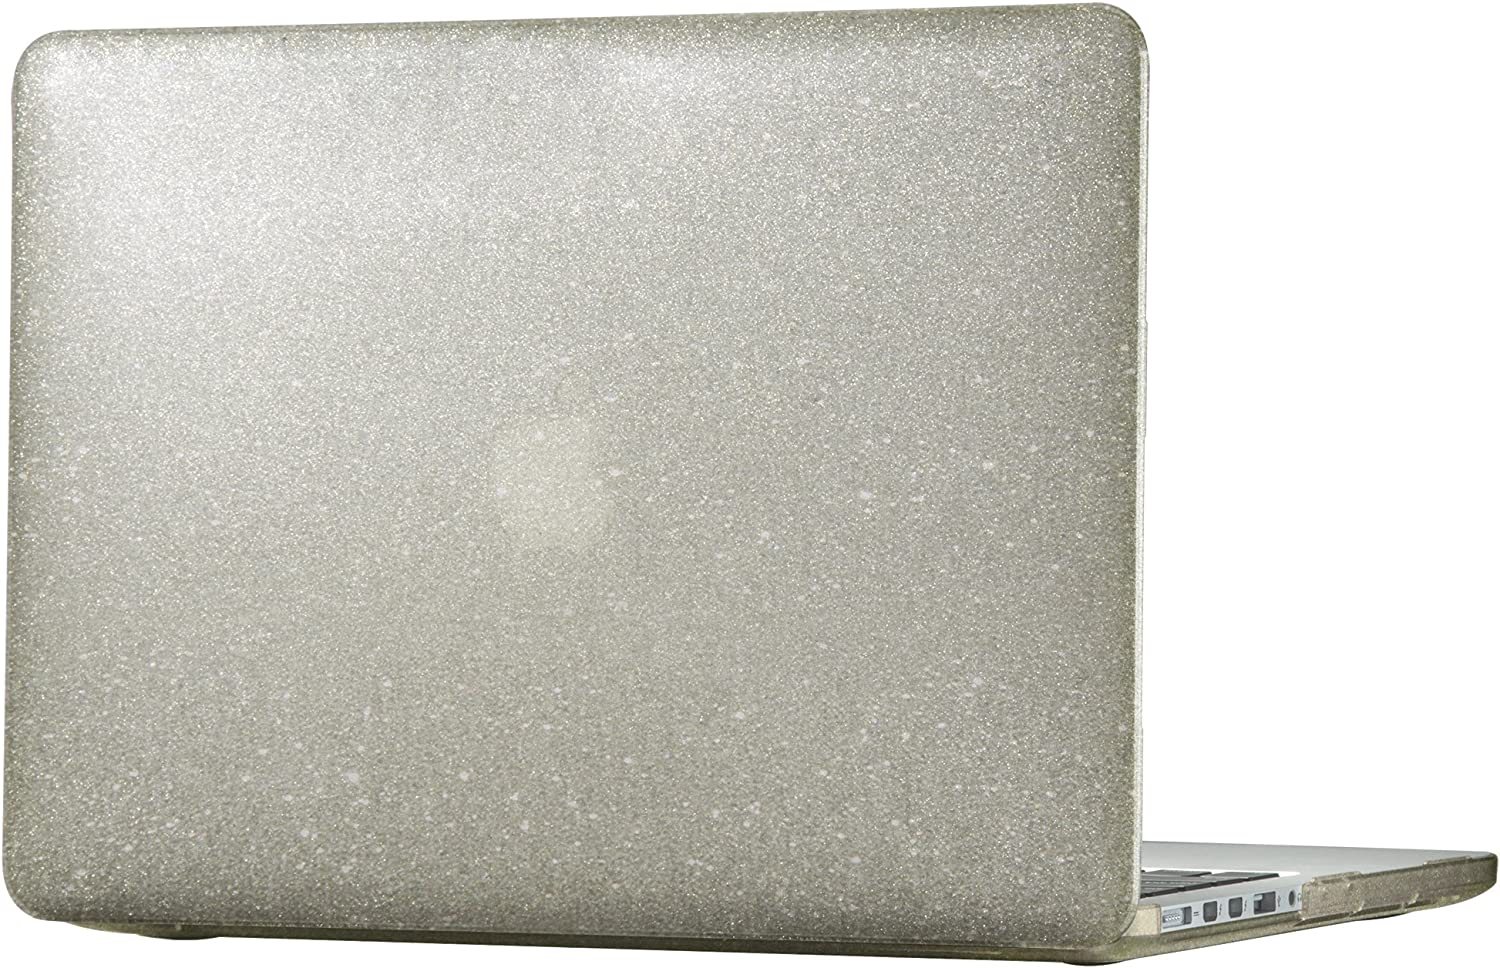 "Speck Products 86400-5636 SmartShell Case for MacBook Pro 13"" with Retina Display, Clear with Gold Glitter"